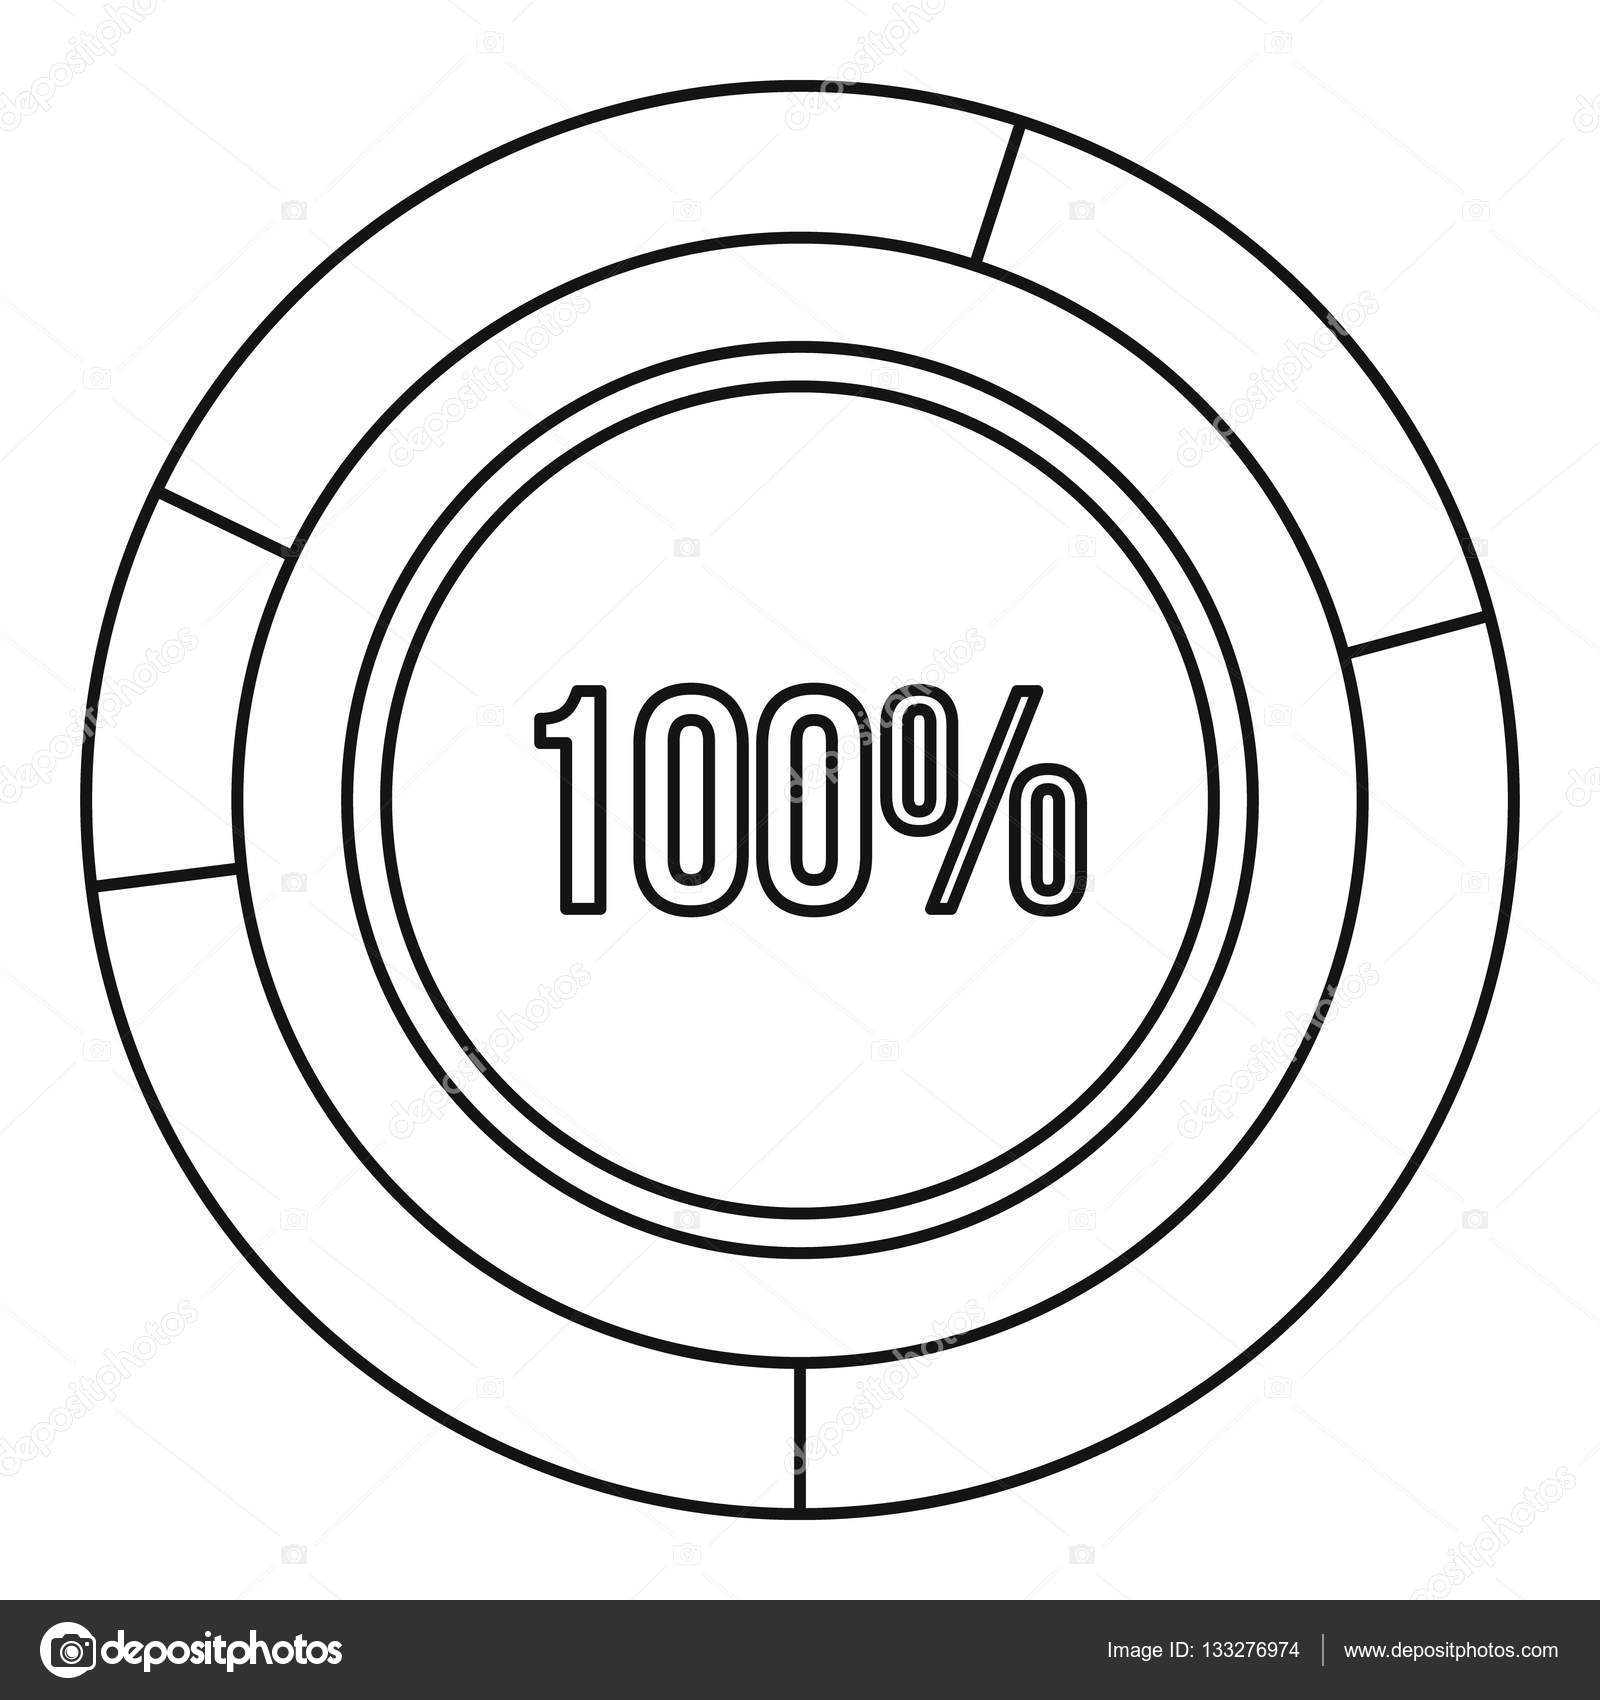 pie chart circle graph 100 percent icon  u2014 stock vector  u00a9 ylivdesign  133276974